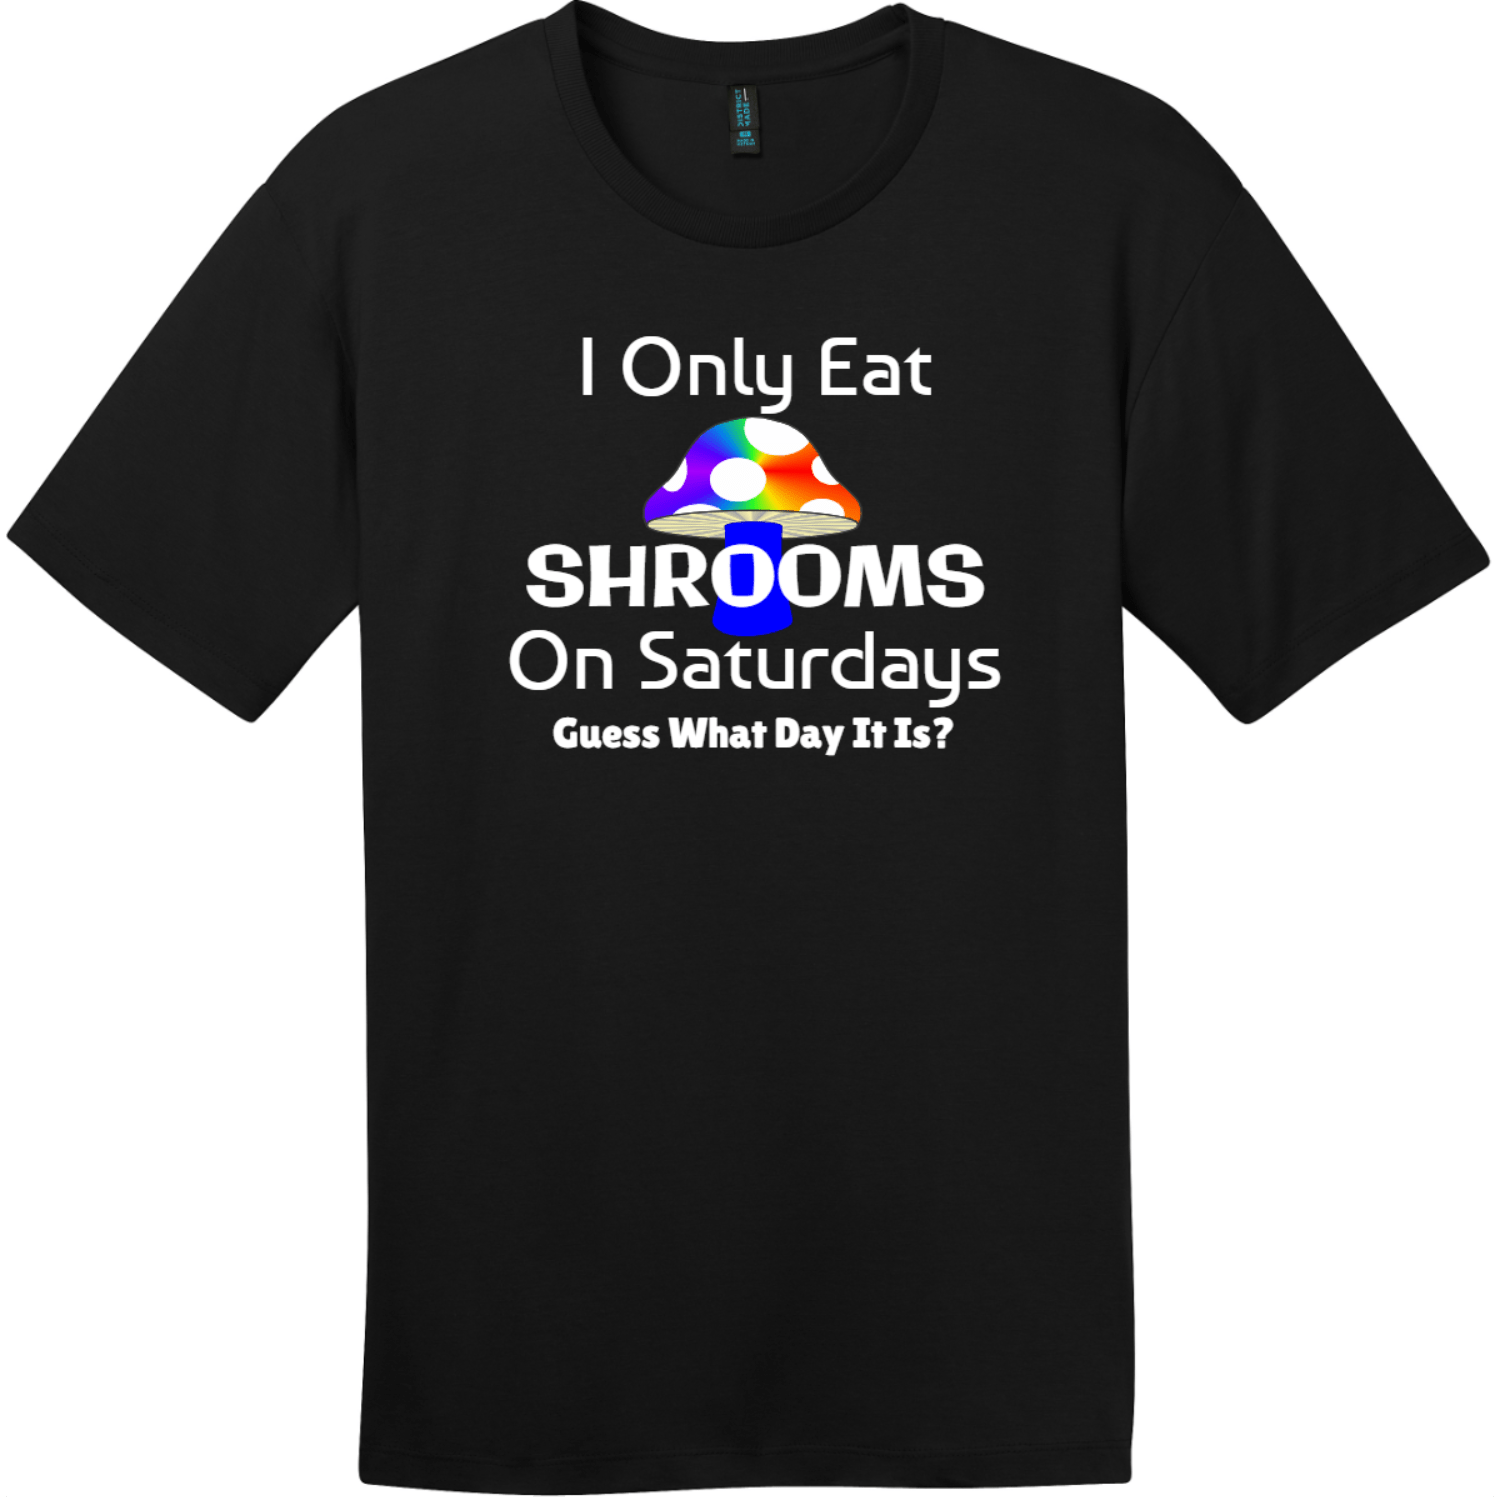 I Only Eat Shrooms On Saturdays T-Shirt Jet Black District Perfect Weight Tee DT104